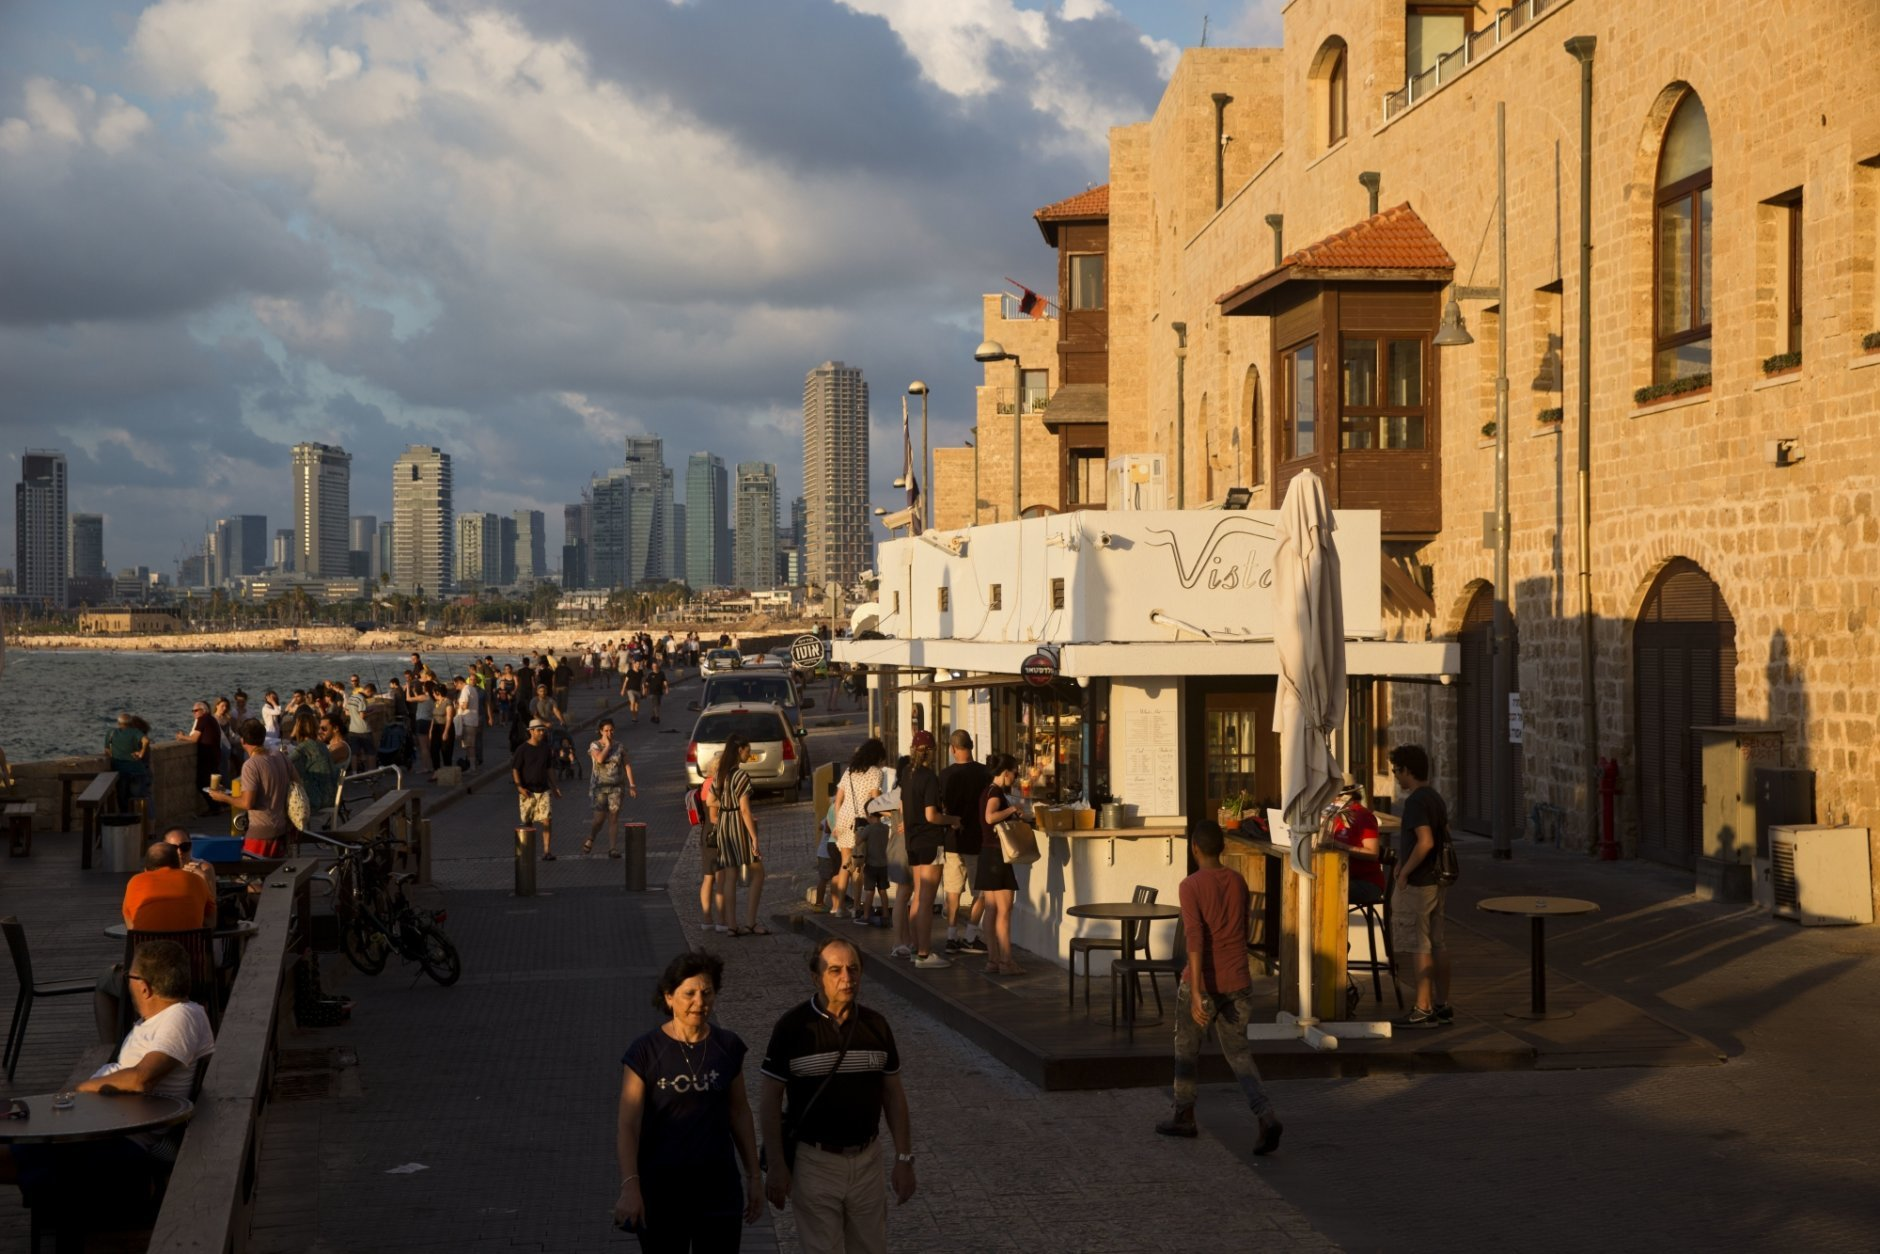 In this Saturday, July 28, 2018 photo, people enjoy the day on Jaffa's promenade overlooking Tel Aviv's skyline and the Mediterranean sea in Jaffa, Israel. Israel's port city of Jaffa is an ancient place. Today glass towers and modern apartment complexes rise amid Jaffa's old white stone buildings. It's famous for its flea market and hummus cafes. But visitors will also find trendy bars, galleries and boutiques. (AP Photo/Oded Balilty)